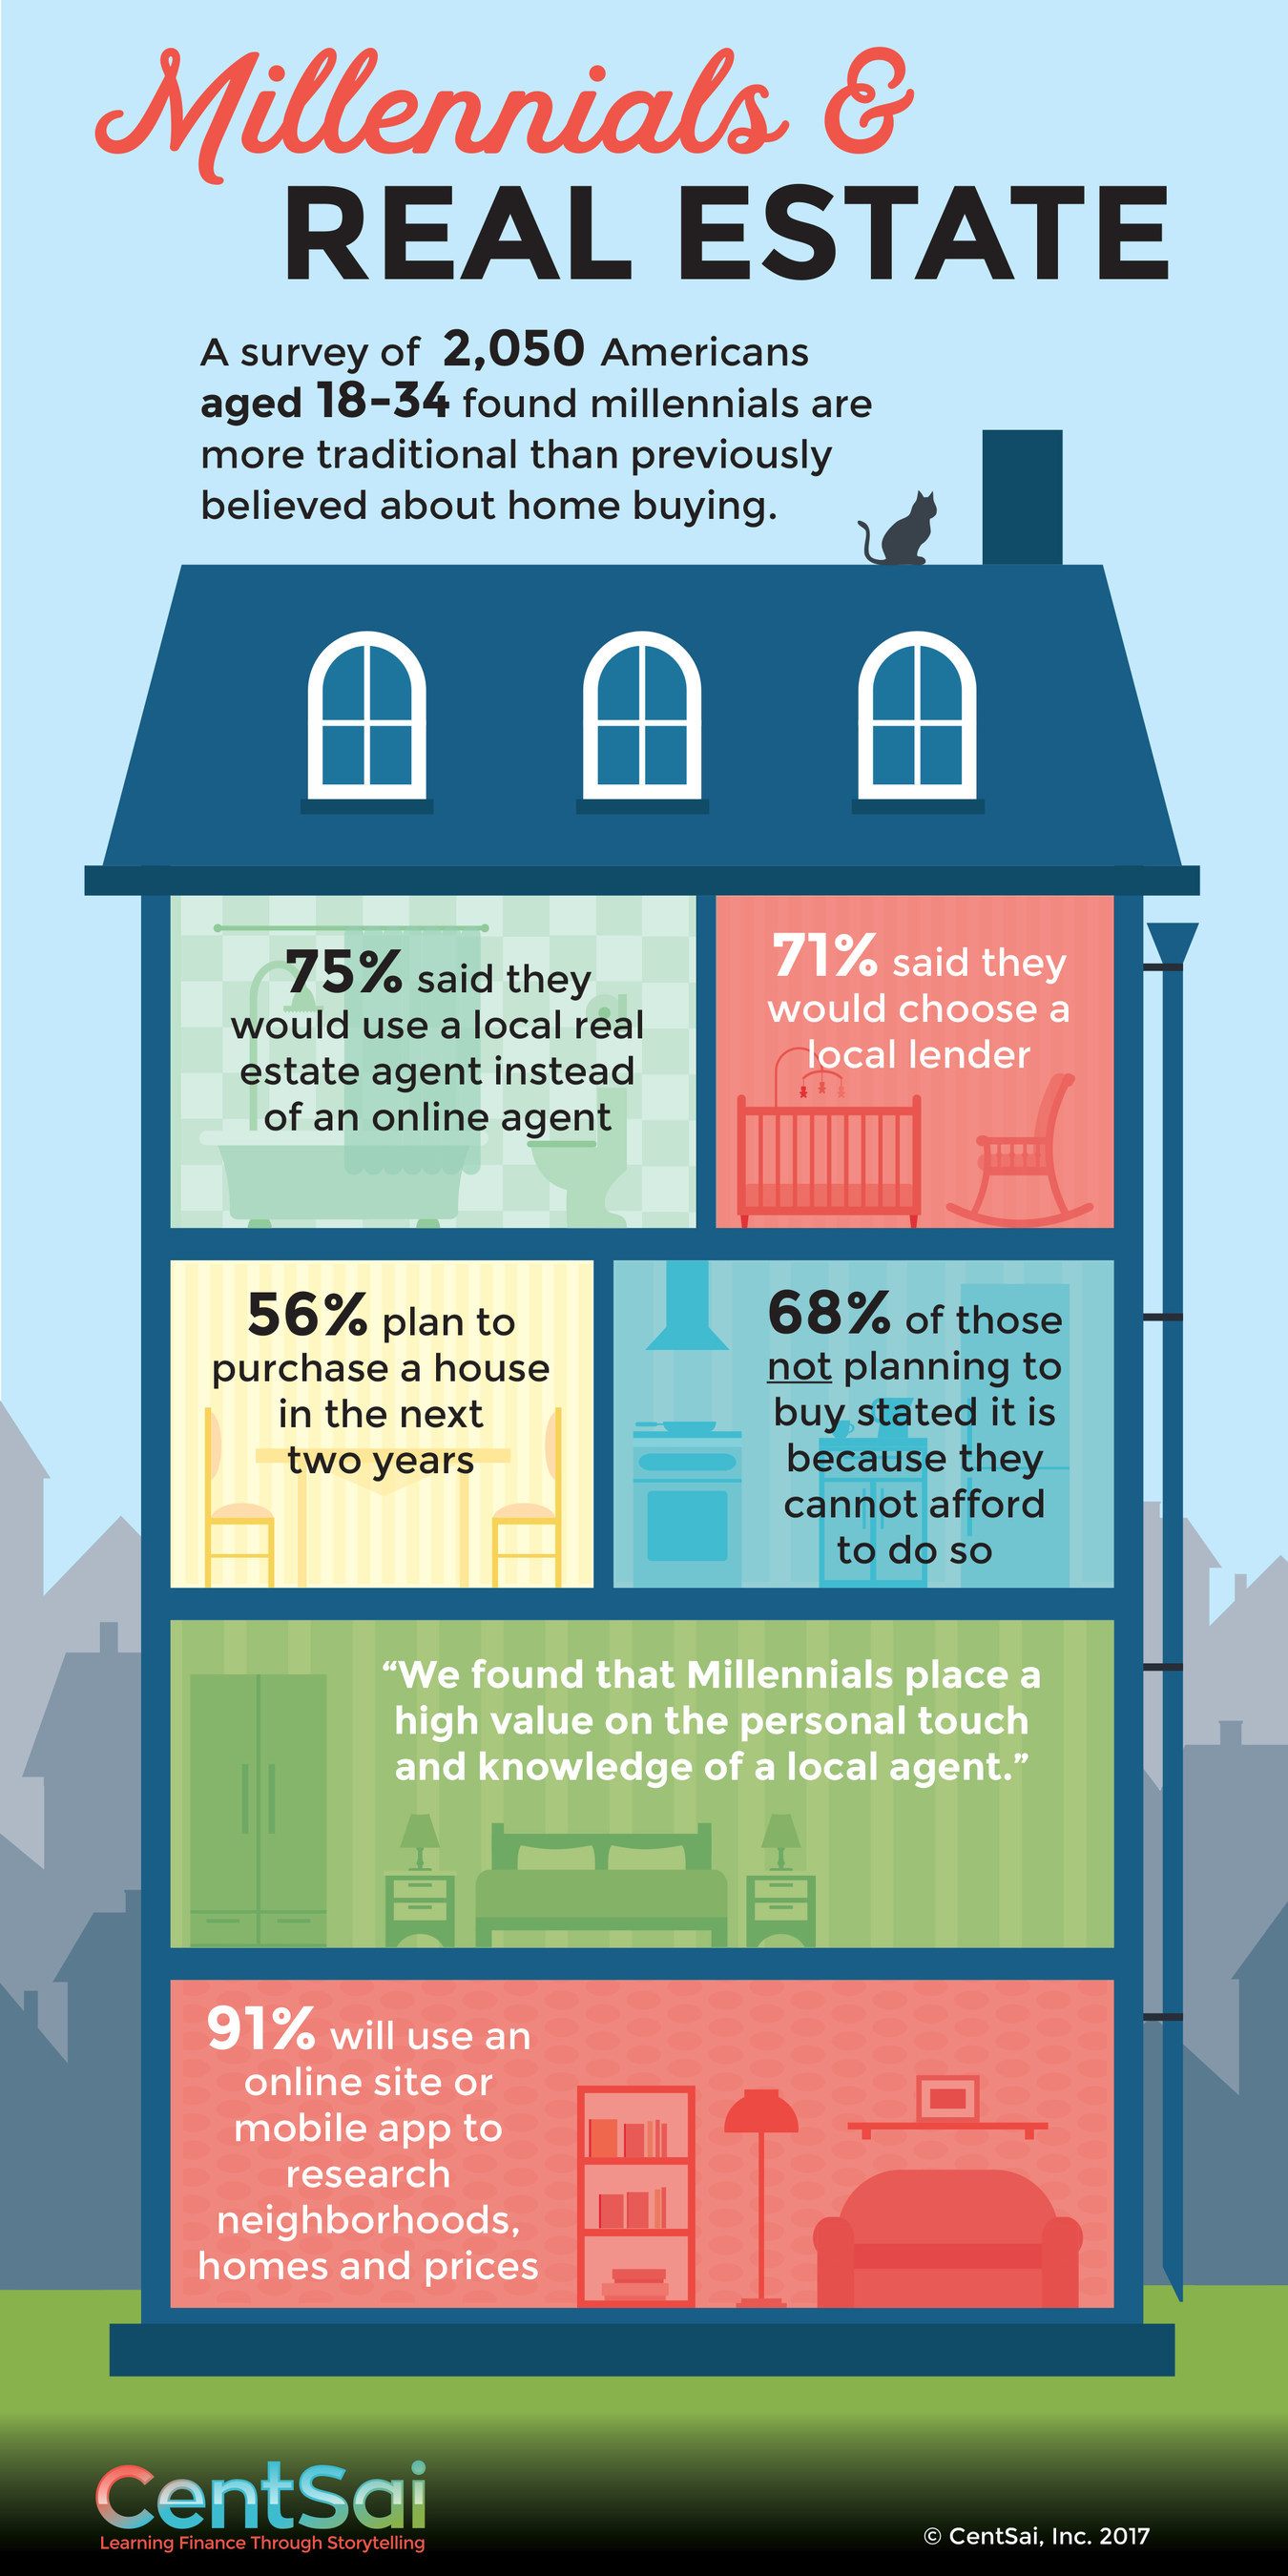 Millennials & Real Estate Infographic